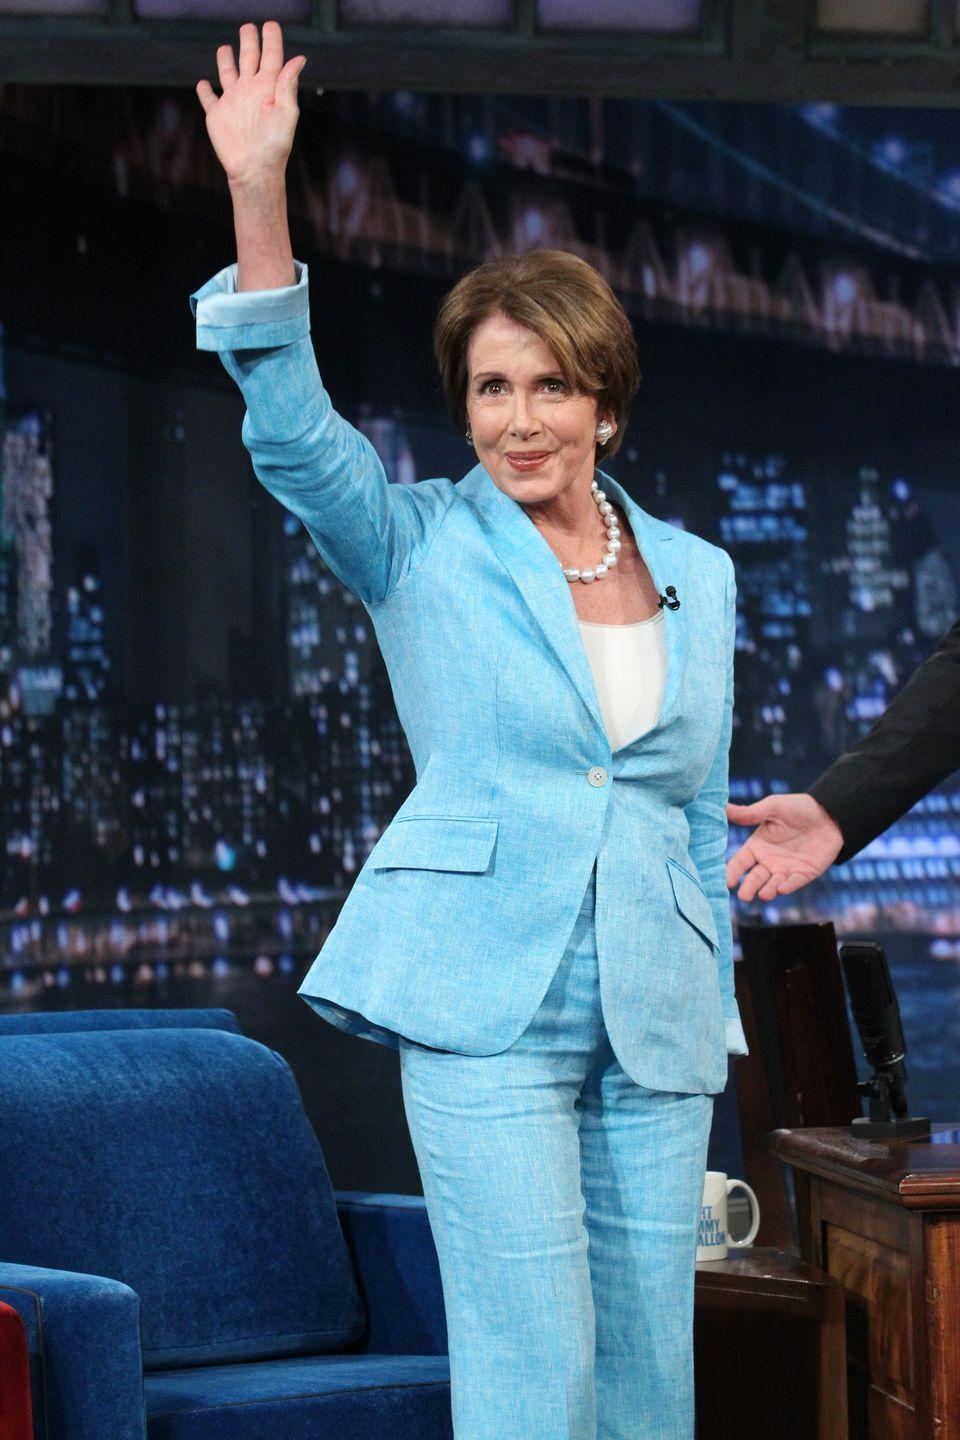 <p>Pelosi waves to the crowd during an appearance on <em>Late Night with Jimmy Fallon. </em> </p>